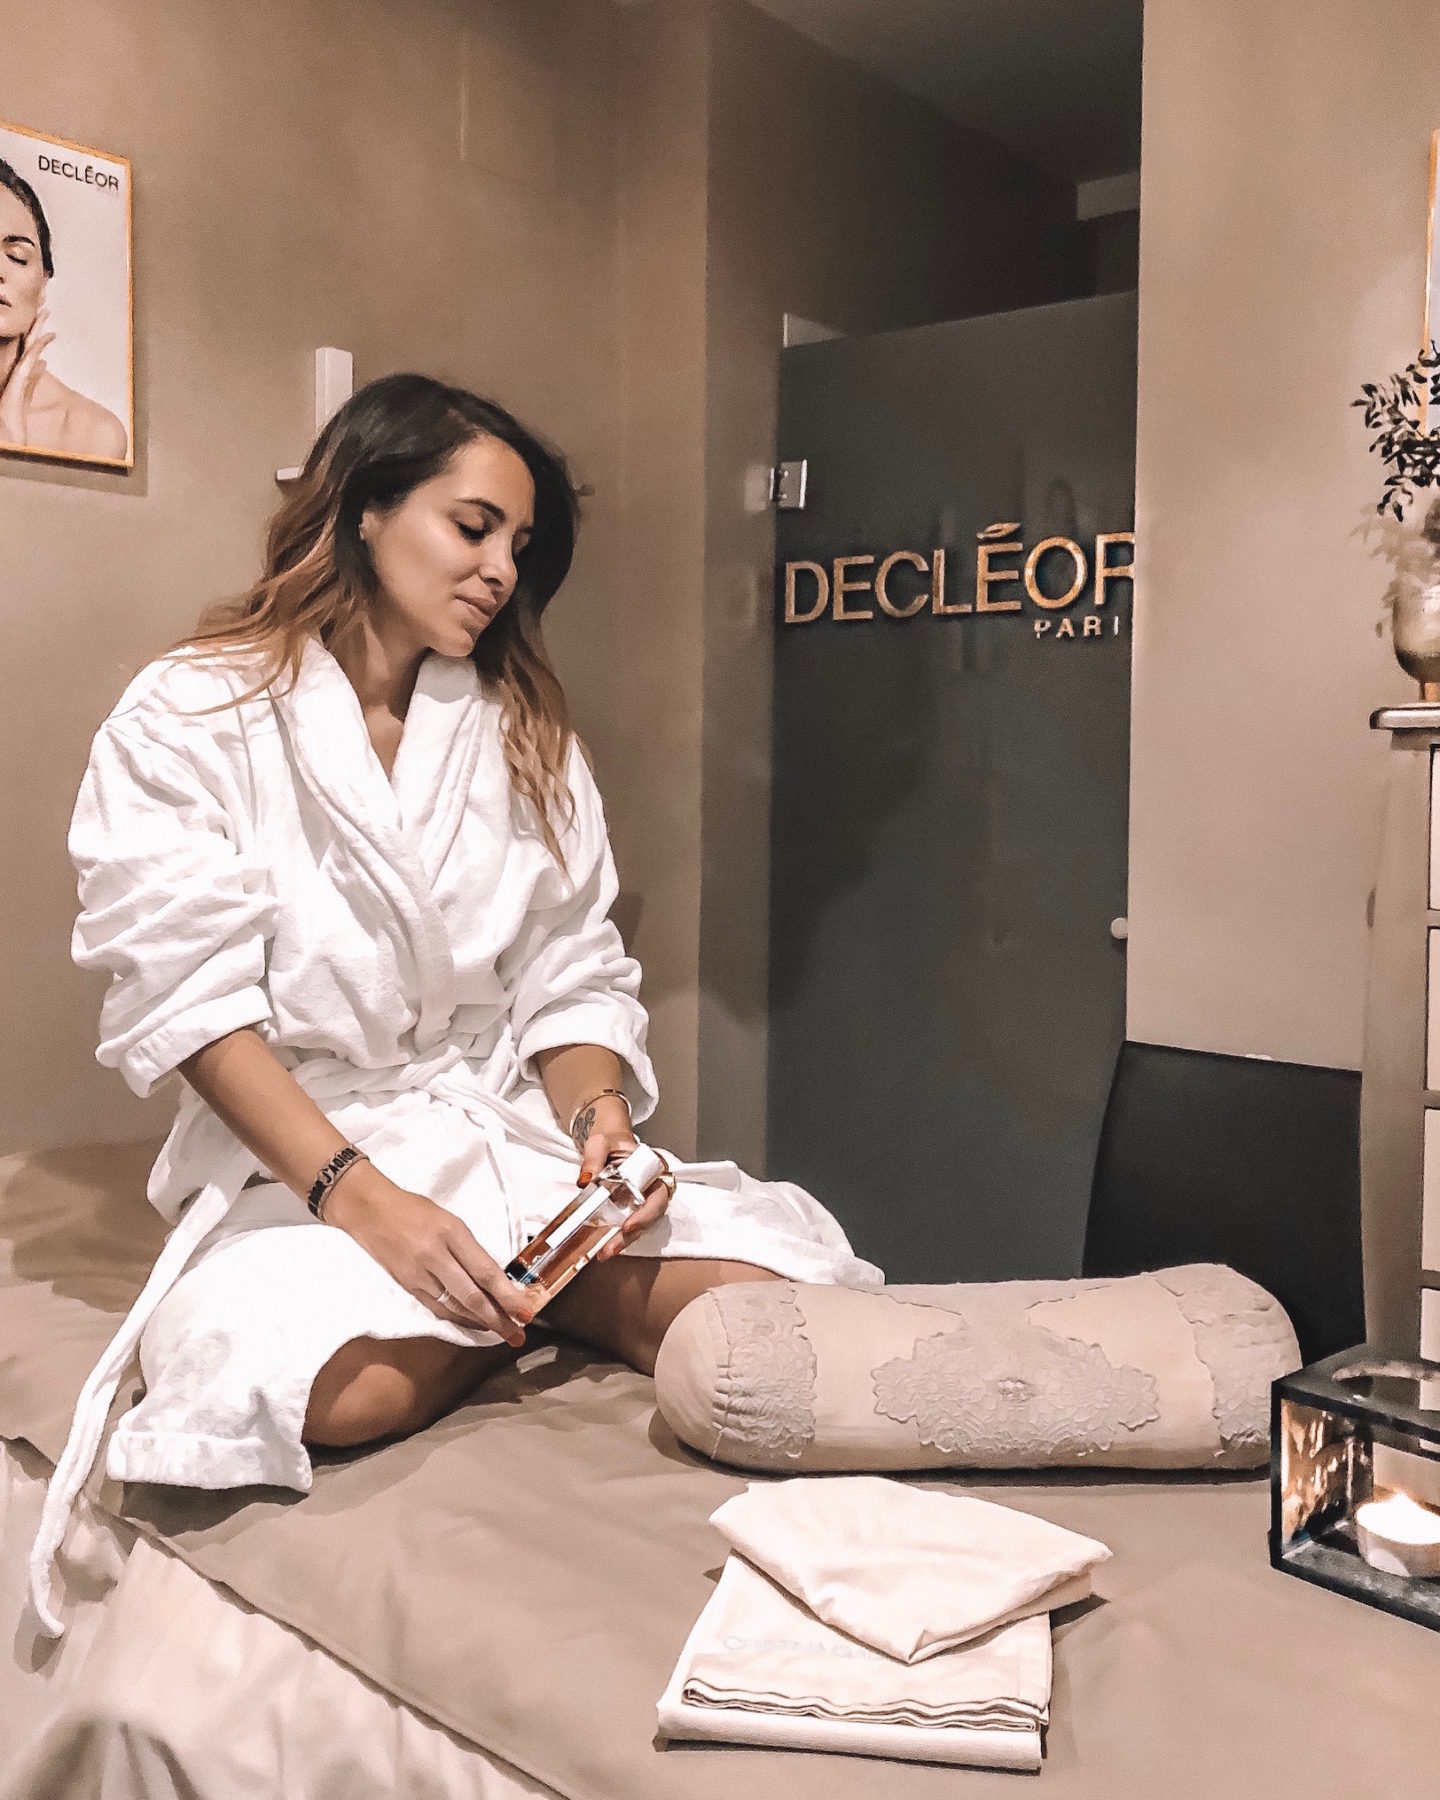 decleor beauty cristina galmiche madrid